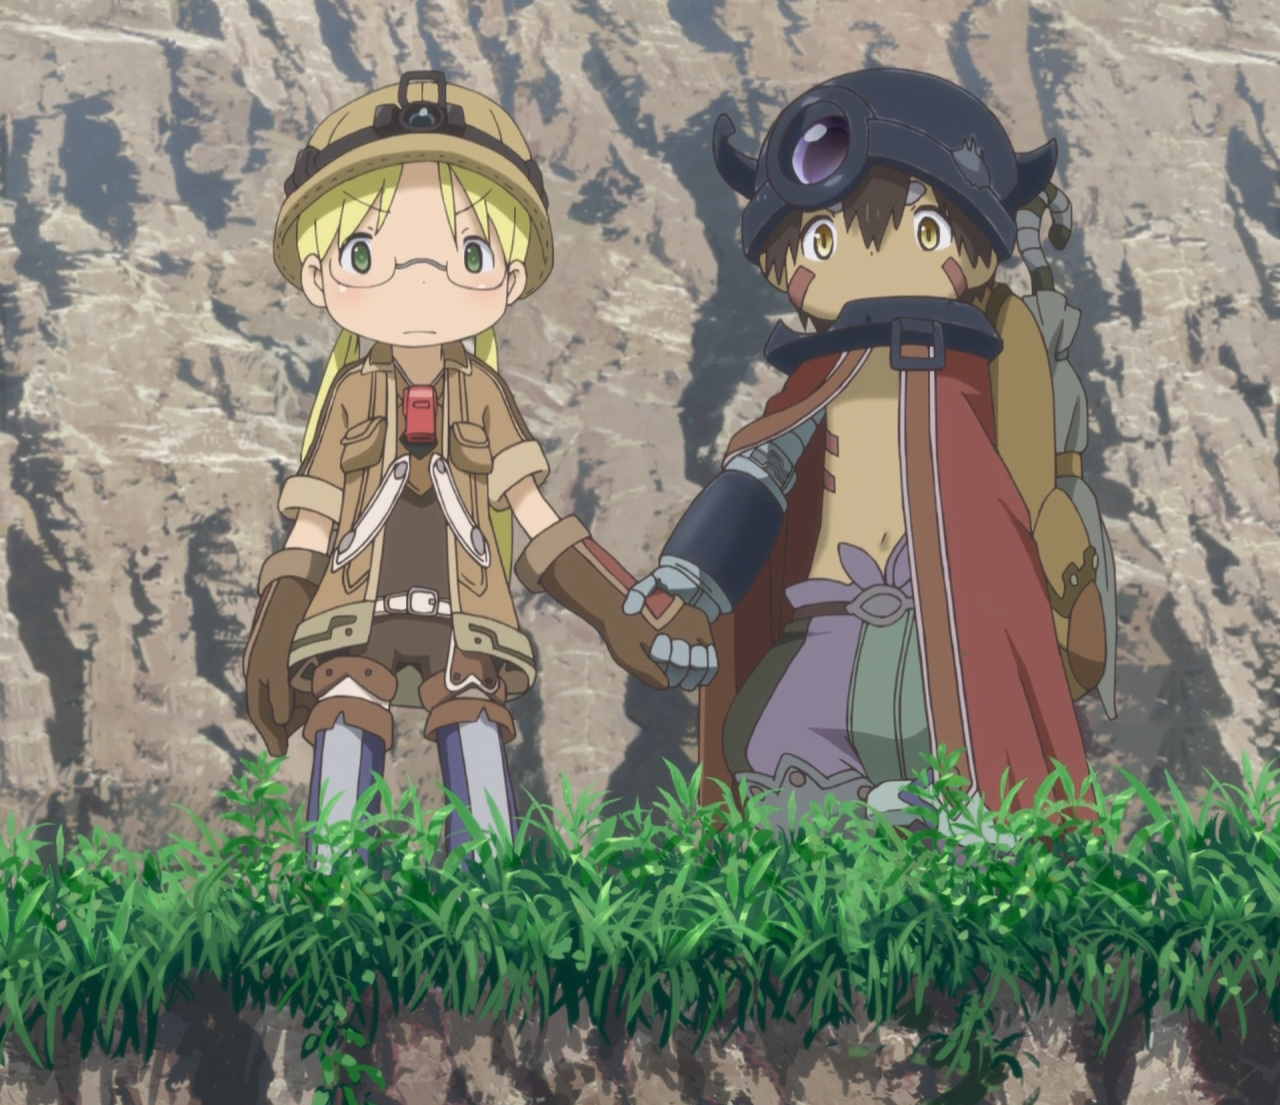 Made In Abyss Manga Wikipedia: Made In Abyss Review Episodes 3&4